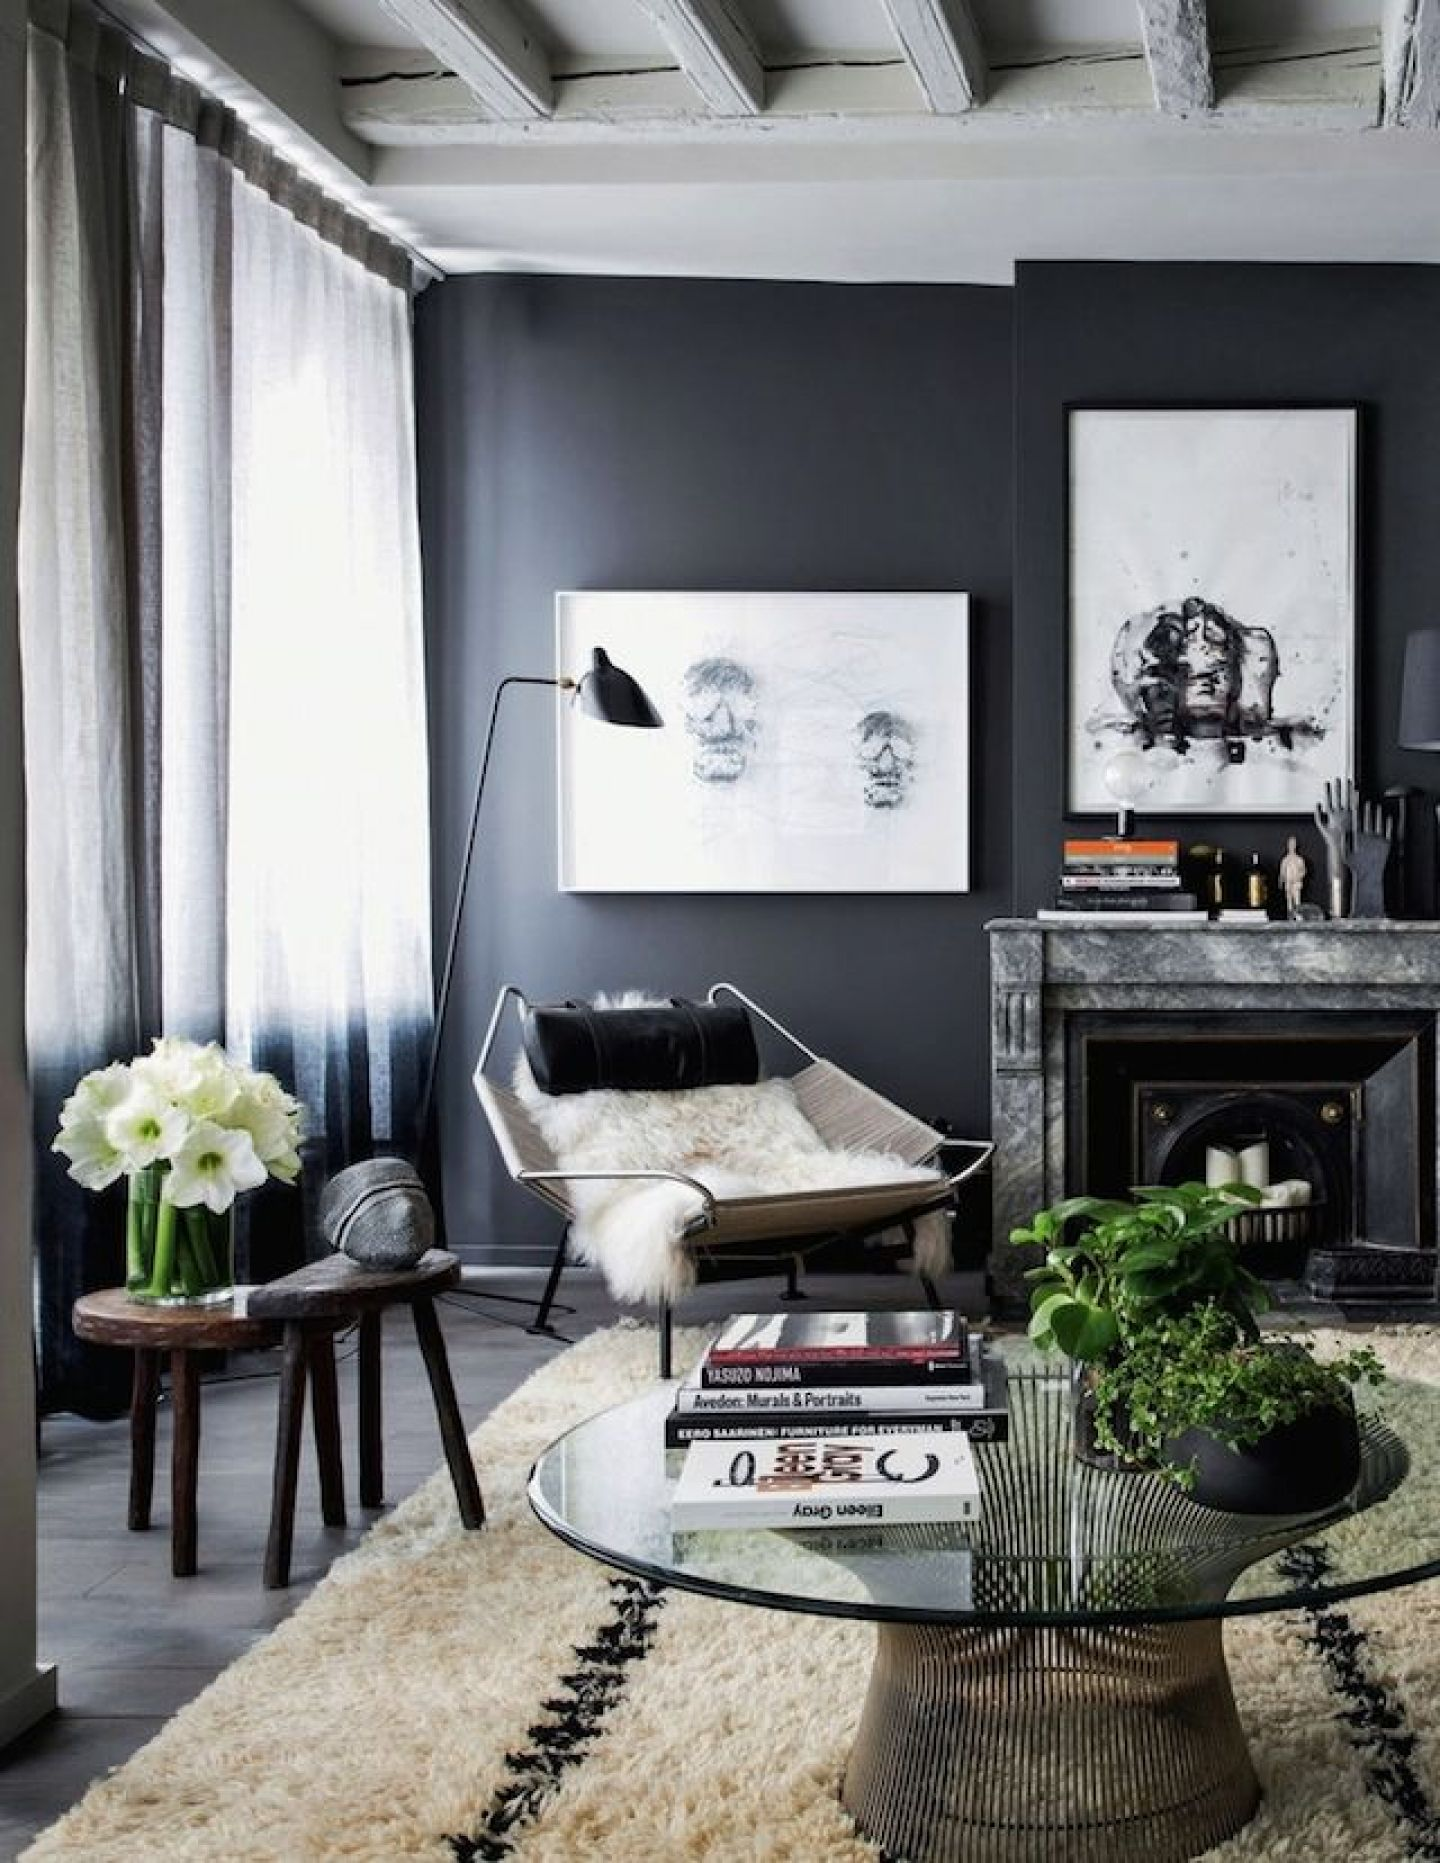 Black Living Room Ideas for Your Inspiration Black Living Room Ideas for your inspiration Black Living Room Ideas for your inspiration Black Living Room Ideas for Your Inspiration 08